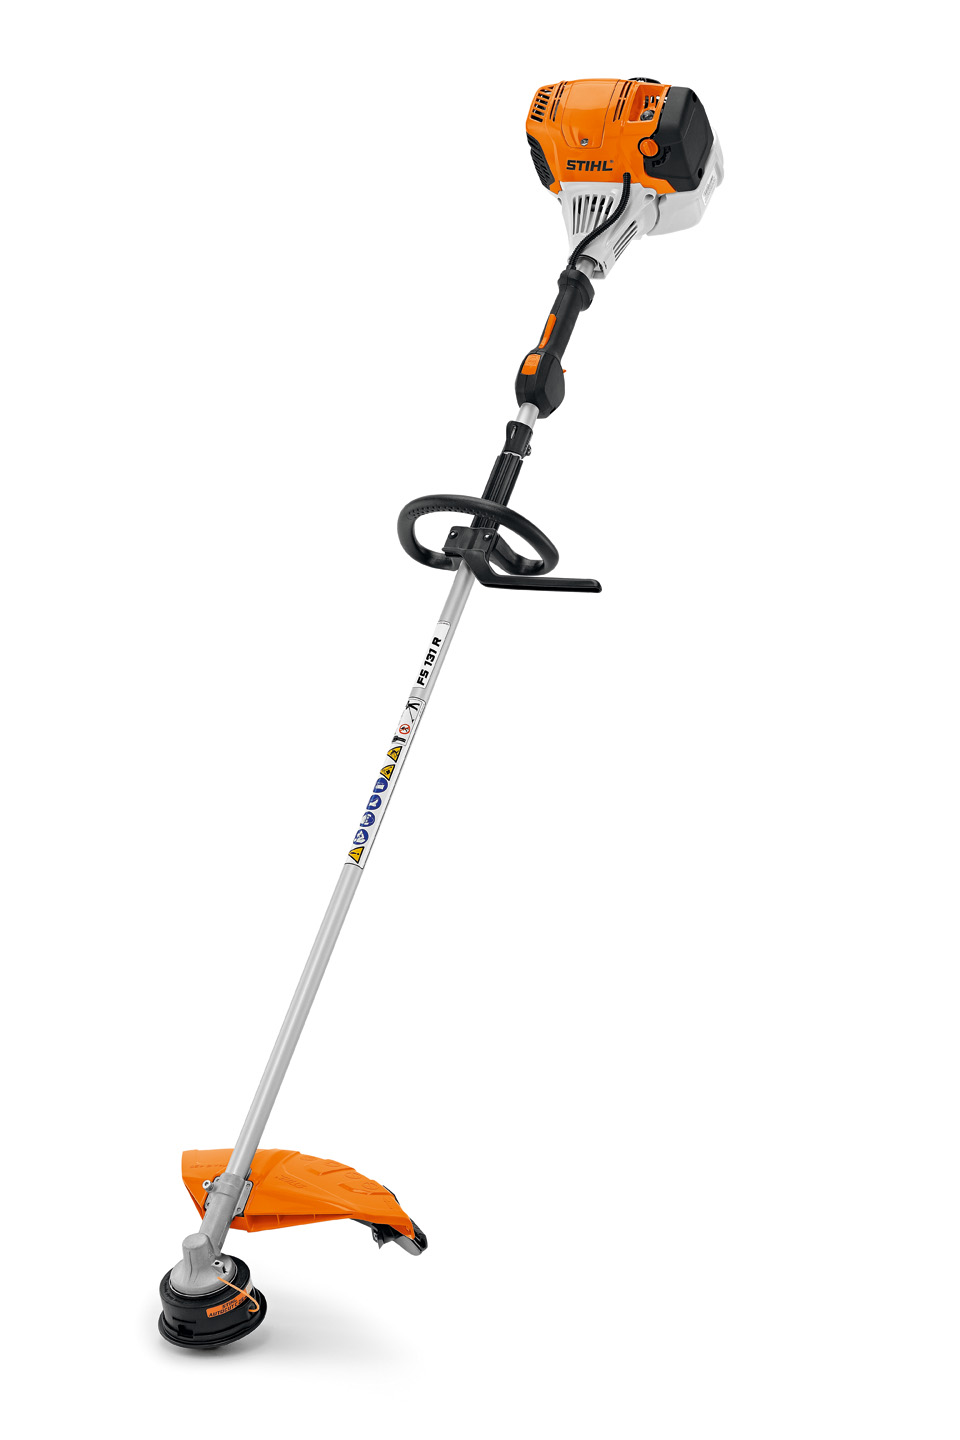 FS 131 R - 1.4 KW / 1.9 HP HIGH-PERFORMANCE PROFESSIONAL BRUSHCUTTER